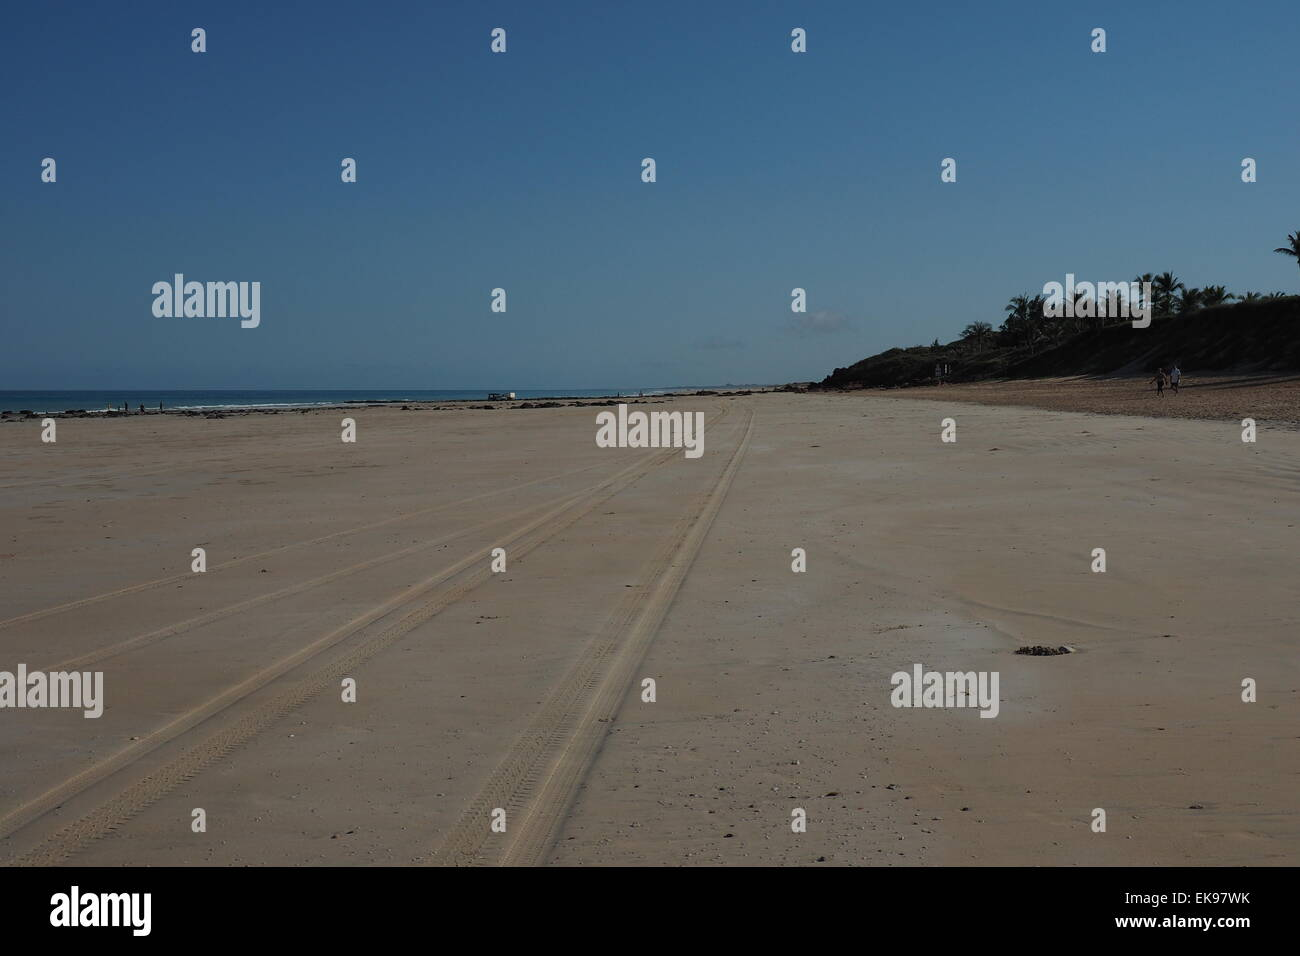 Tyre tracks on Cable Beach, Broome. - Stock Image